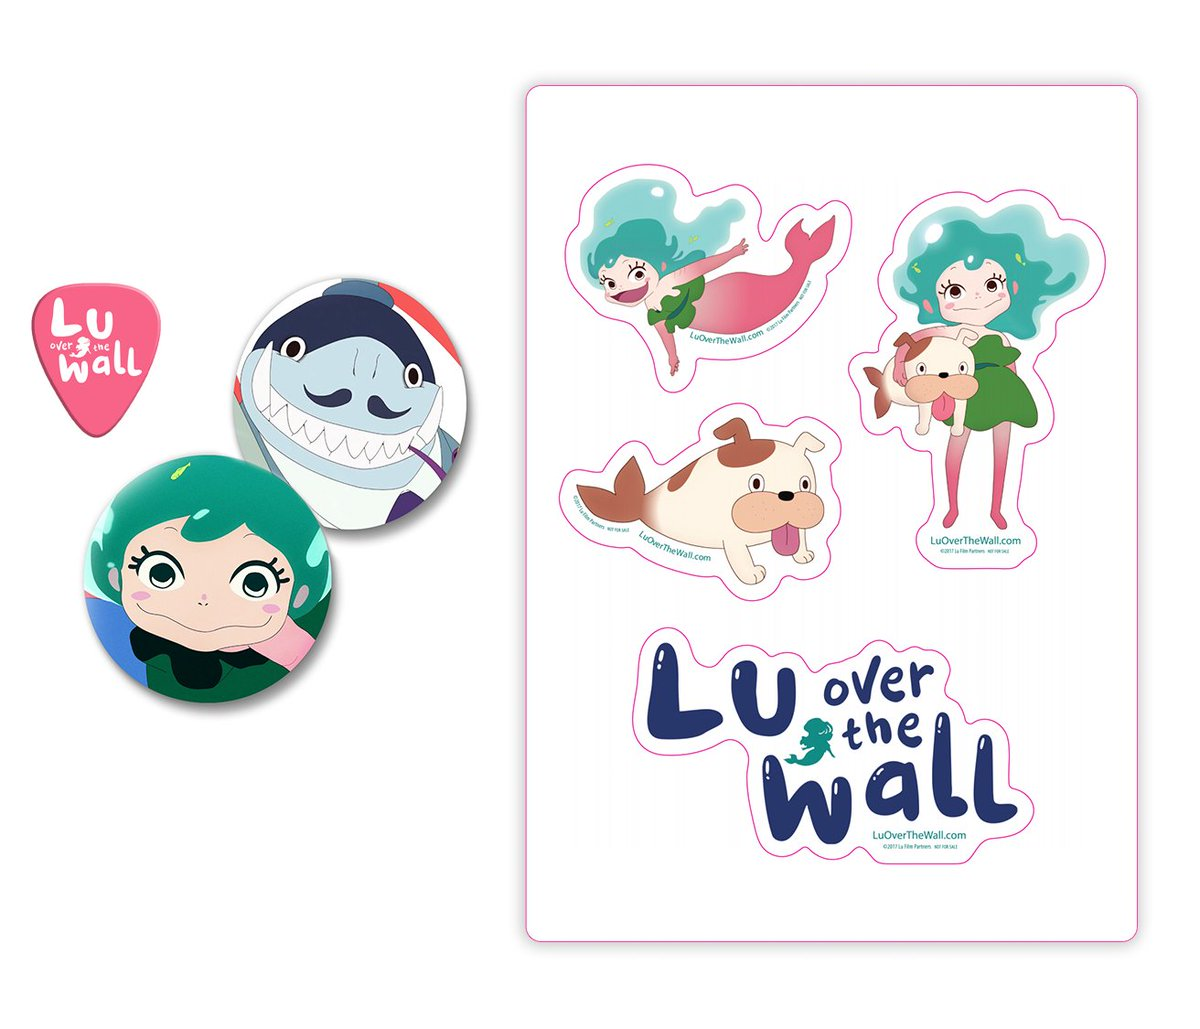 Our #NYICFF2018 Opening Night film LU OVER THE WALL opens in just over a week! And weve got a super cool giveaway to offer to our audiences: a pair of tickets, some adorable merch, and a holo umbrella! Follow this link to enter through May 8: bit.ly/2HNTd77